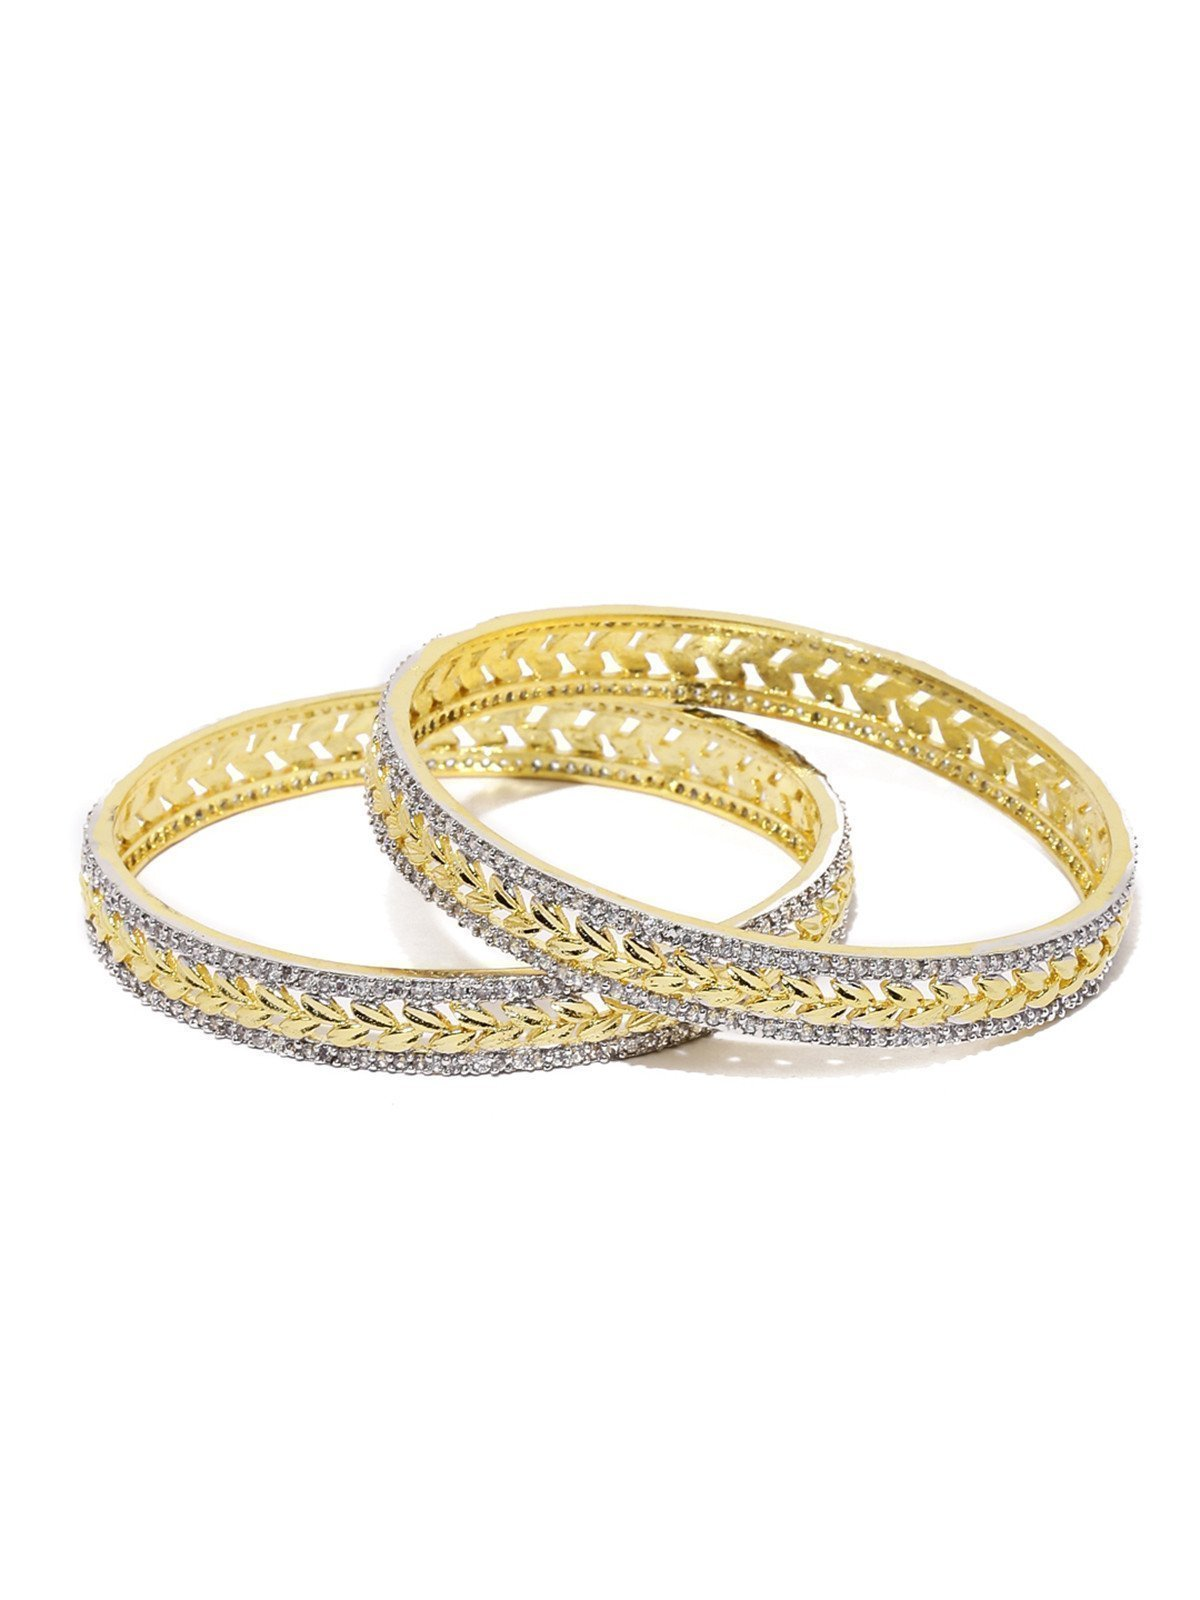 Set Of 2 Sparkling Cubic Zirconia Bangles